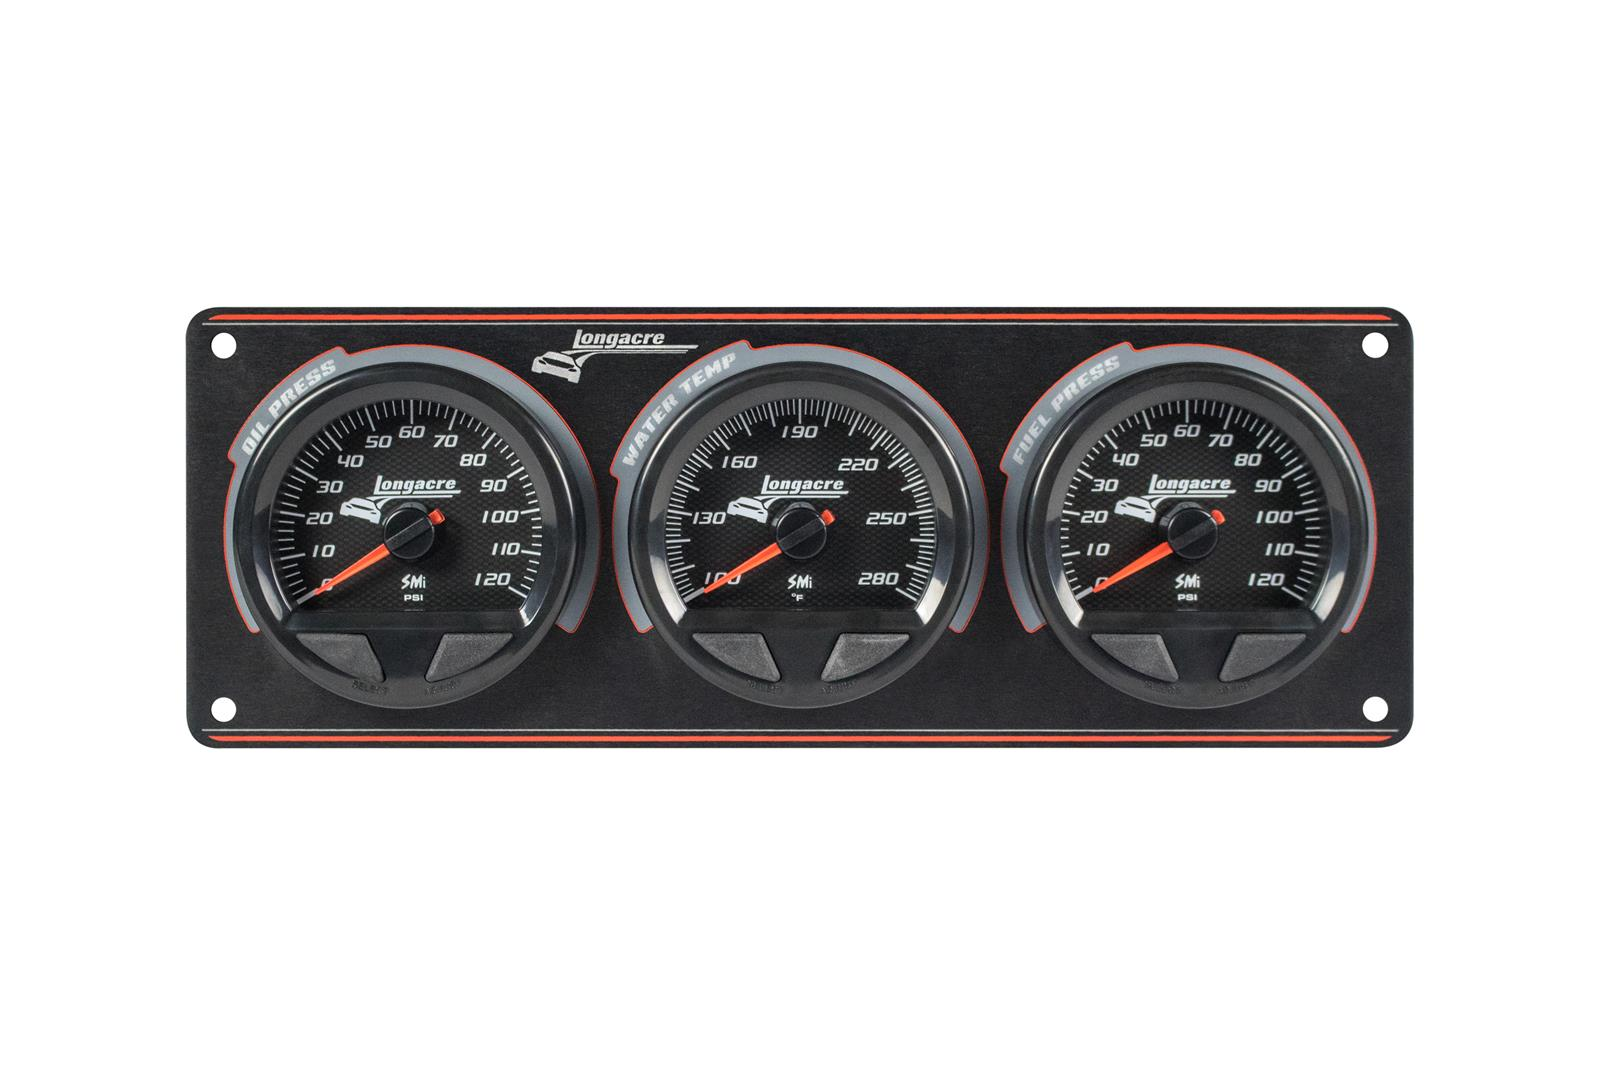 SMi™ Elite Waterproof Gauge Panel, 3 Gauge Oil Pressure/Water Temperature/Fuel Pressure 120psi